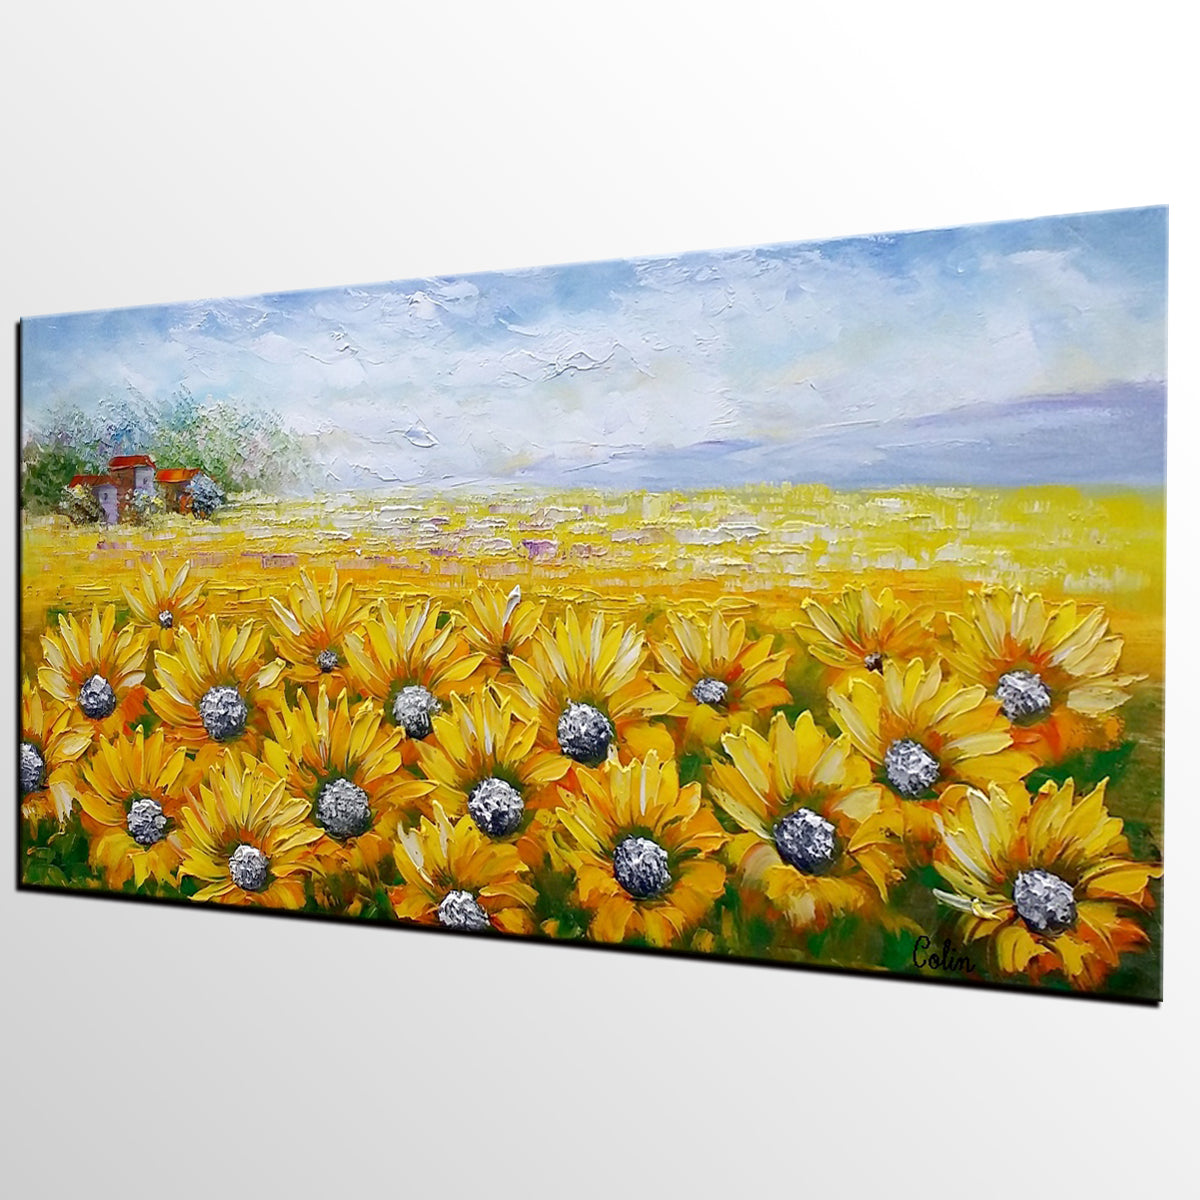 Large Wall Art, Heavy Texture Art, Canvas Painting, Landscape Painting, Sunflower Painting, Wall Art, Living Room Art, Abstract Art